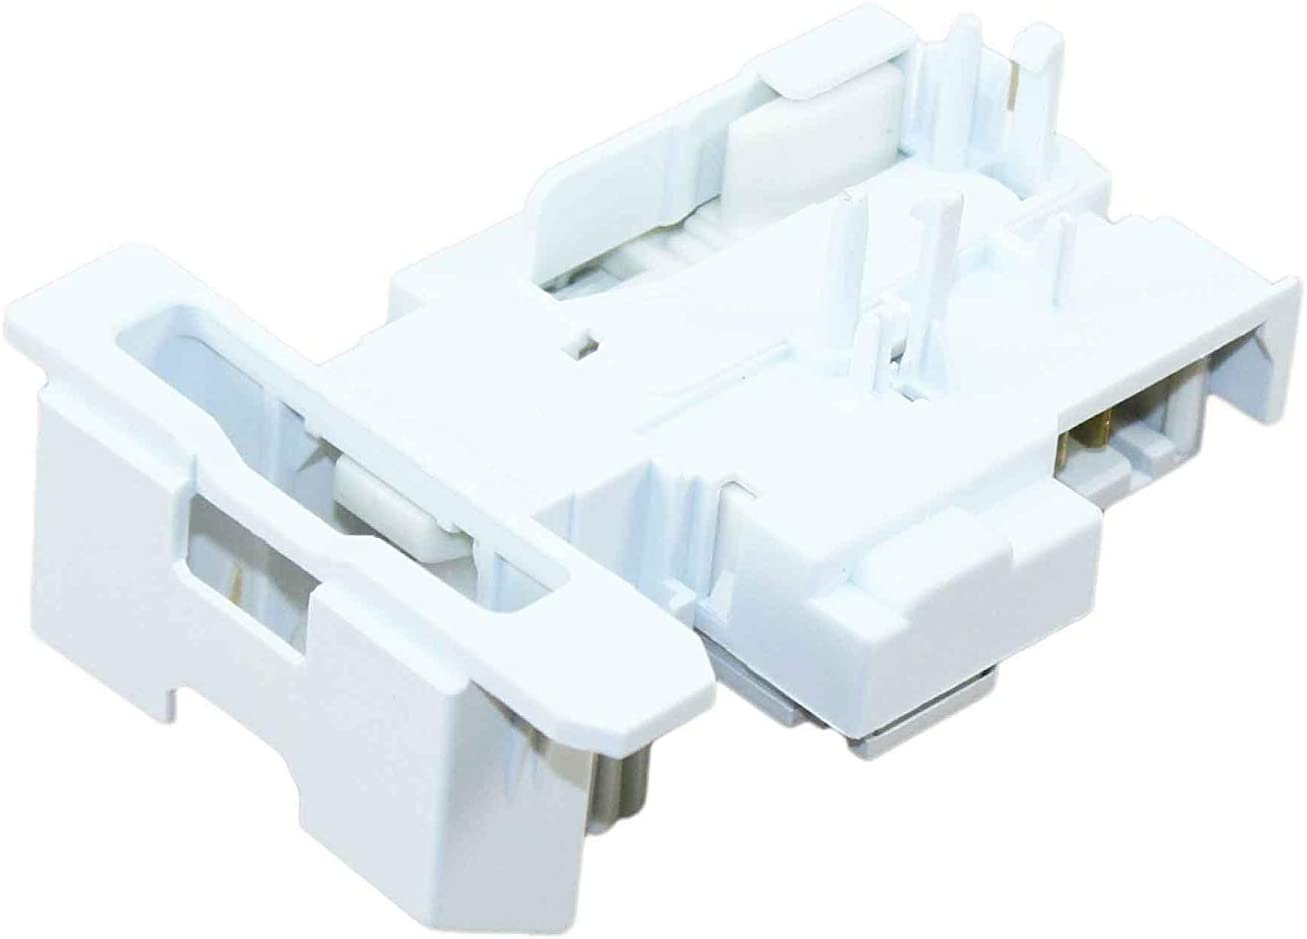 Endruance Pro 137353302 Washing Machine Lid Lock Replacement for Frigidaire